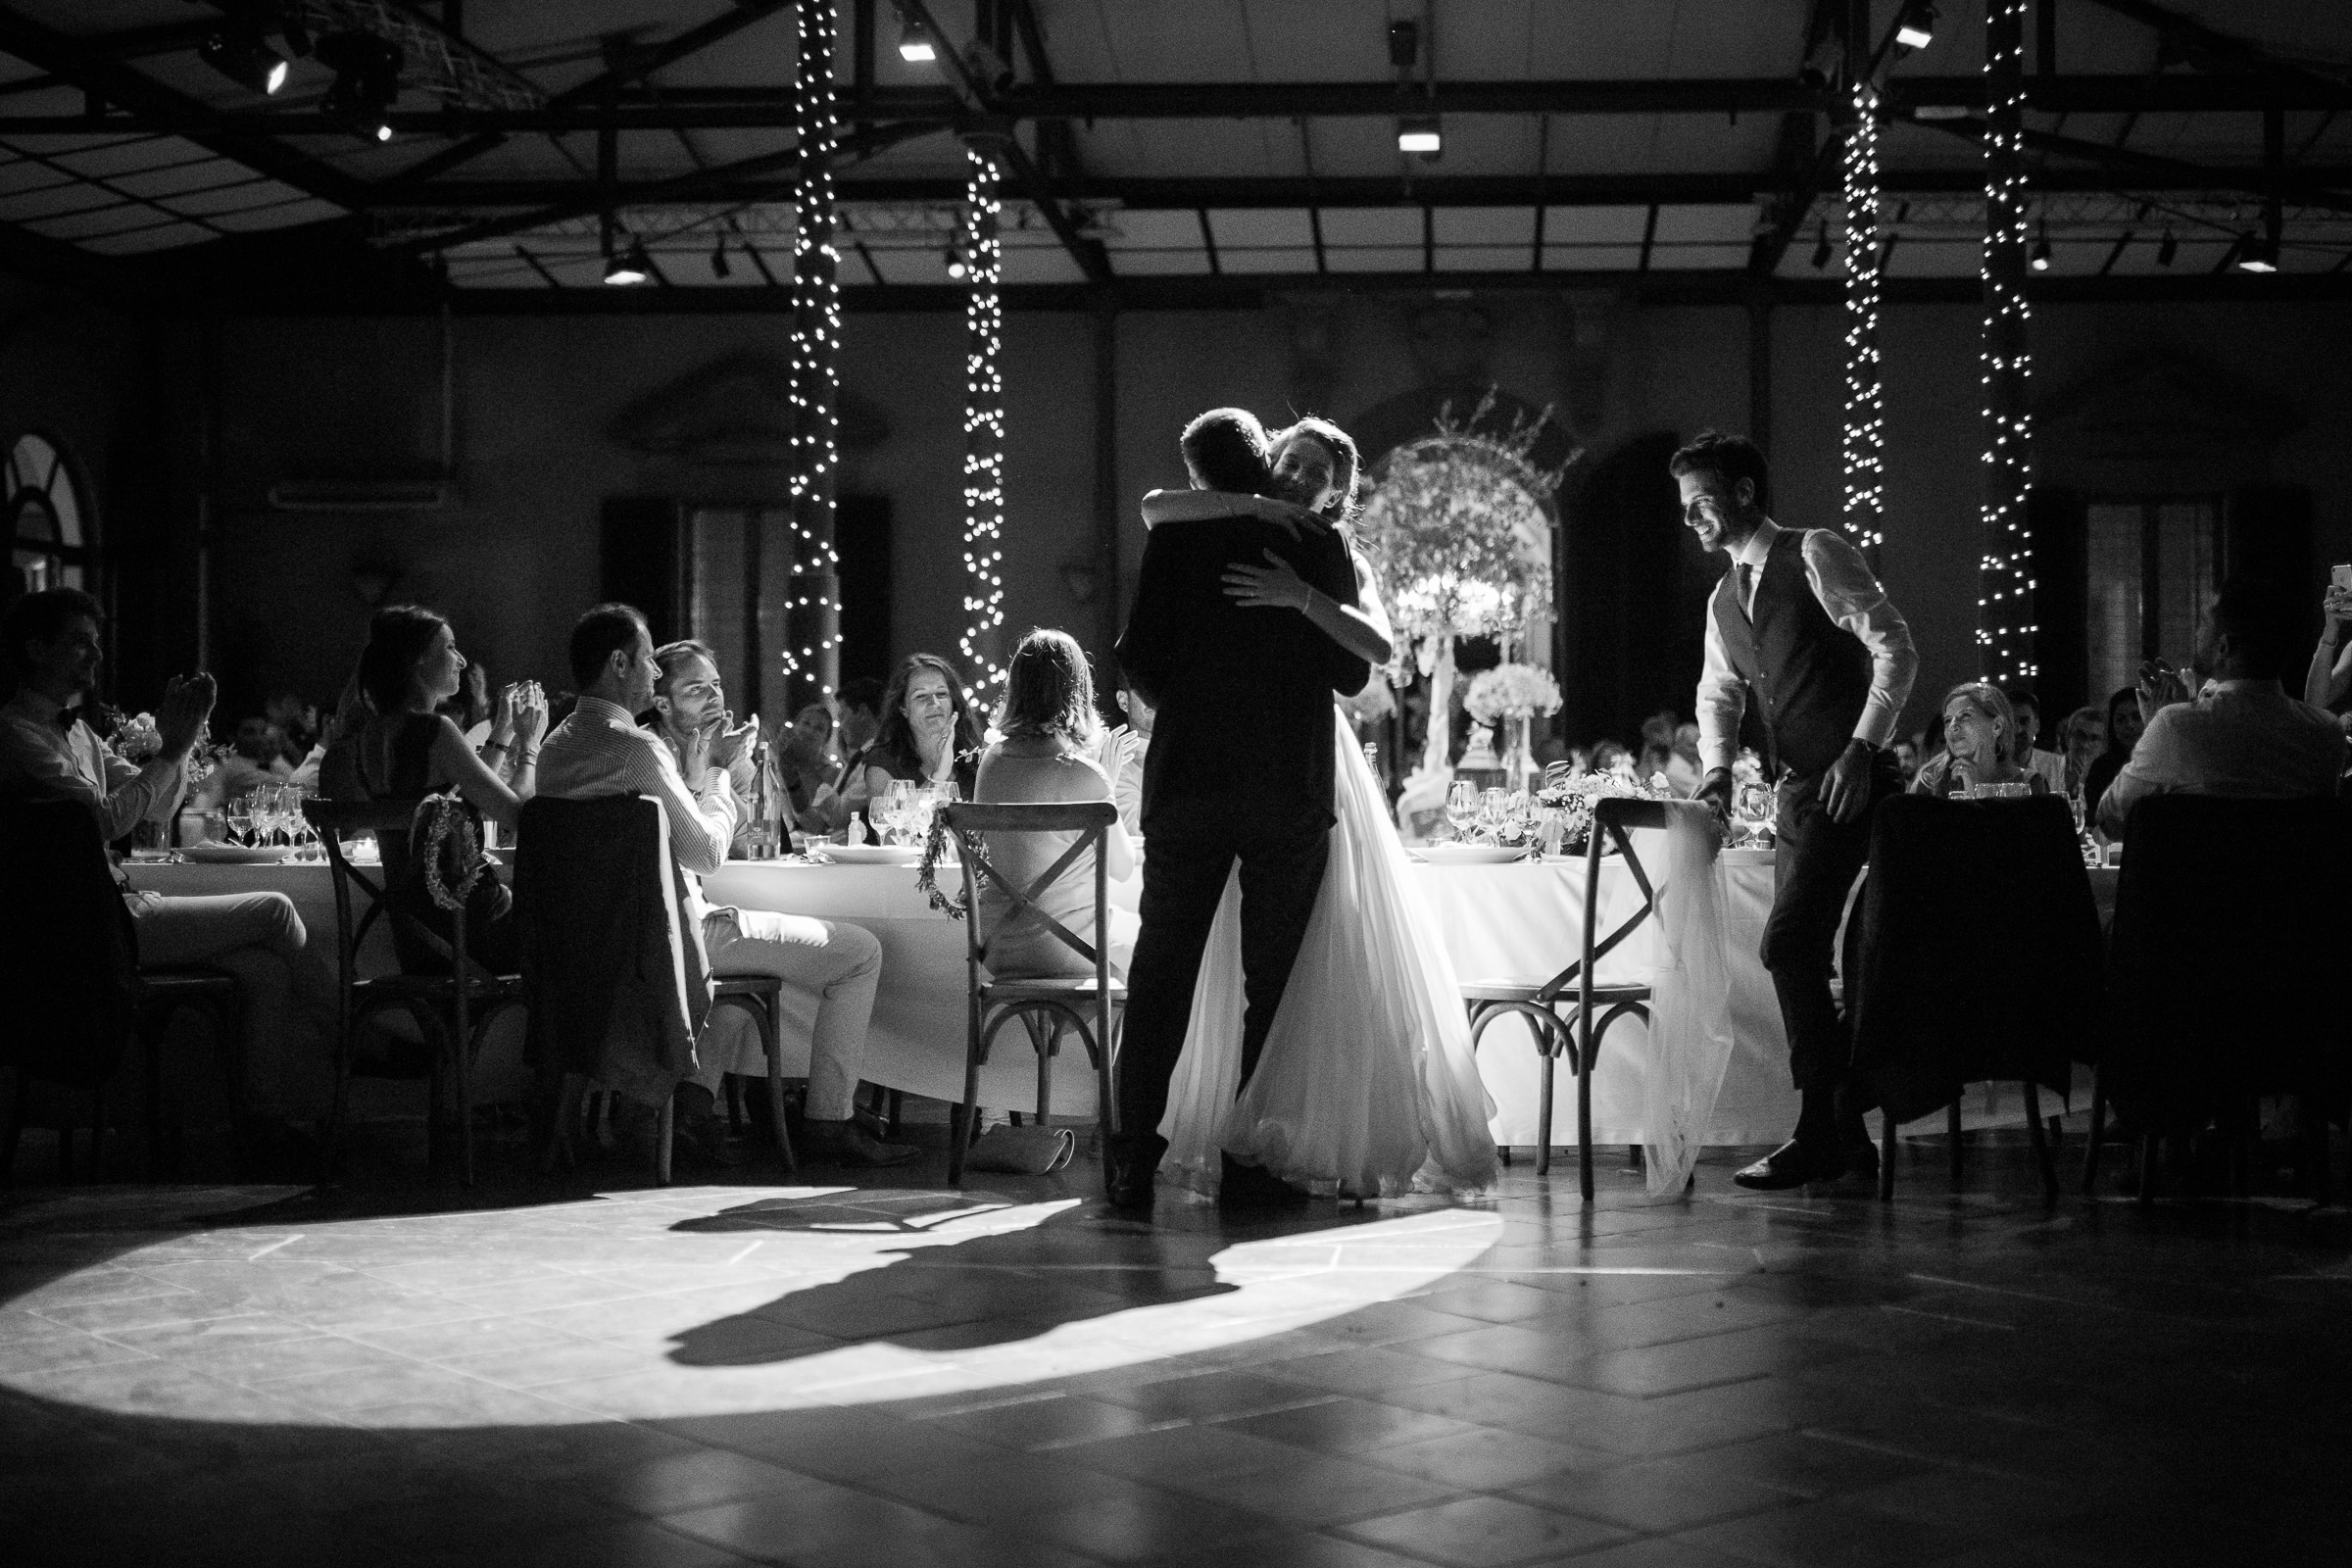 Bride stands to hug father at wedding table - photo by Sylvain Bouzat Wedding Photographer